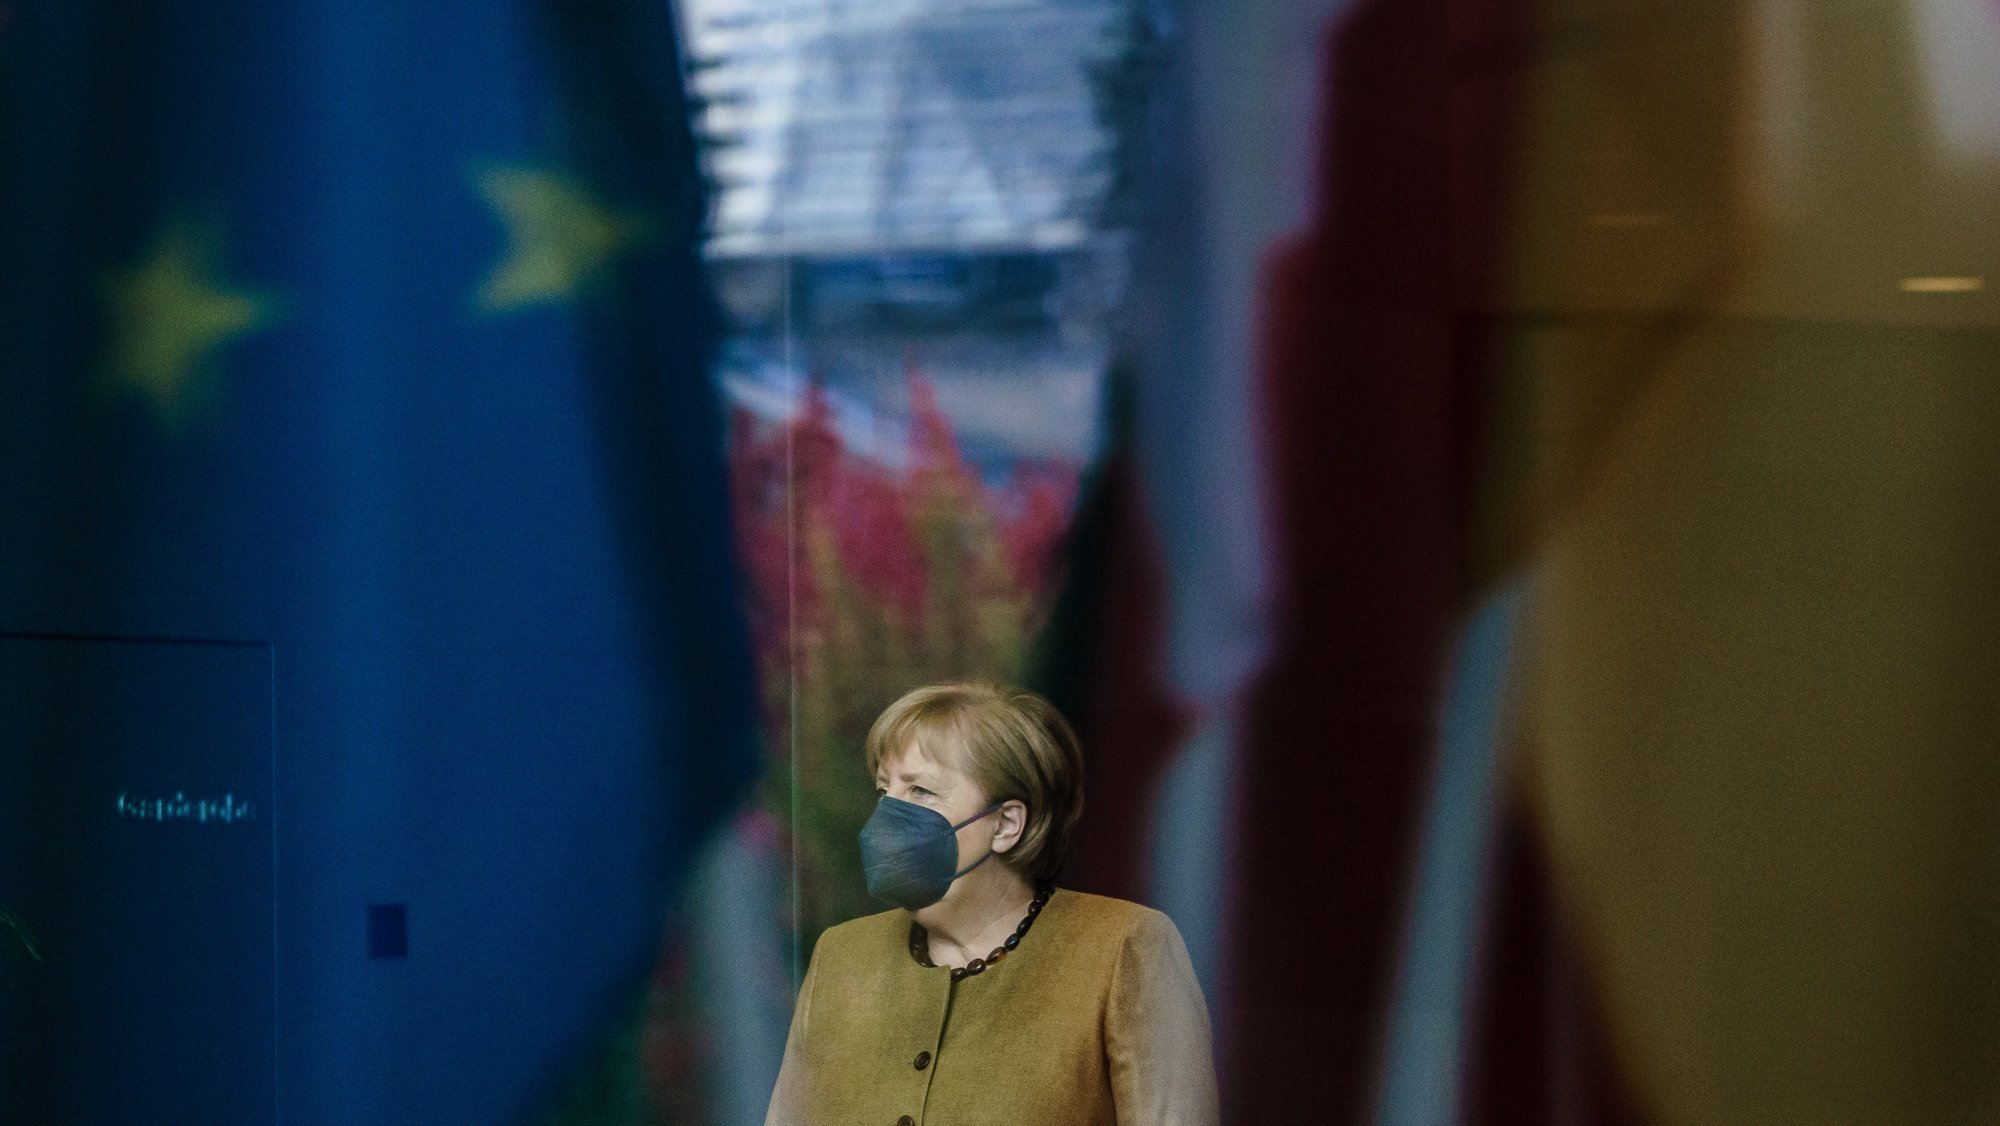 epa09519736 German Chancellor Angela Merkel, seen behind reflections of flags and the dome of the German Parliament 'Bundestag', waits for the arrival of Italian President Sergio Mattarella at the chancellery in Berlin, Germany, 12 October 2021. Merkel and Mattarella meet for bilateral talks. The Italian president is on an official visit to Berlin.  EPA/CLEMENS BILAN